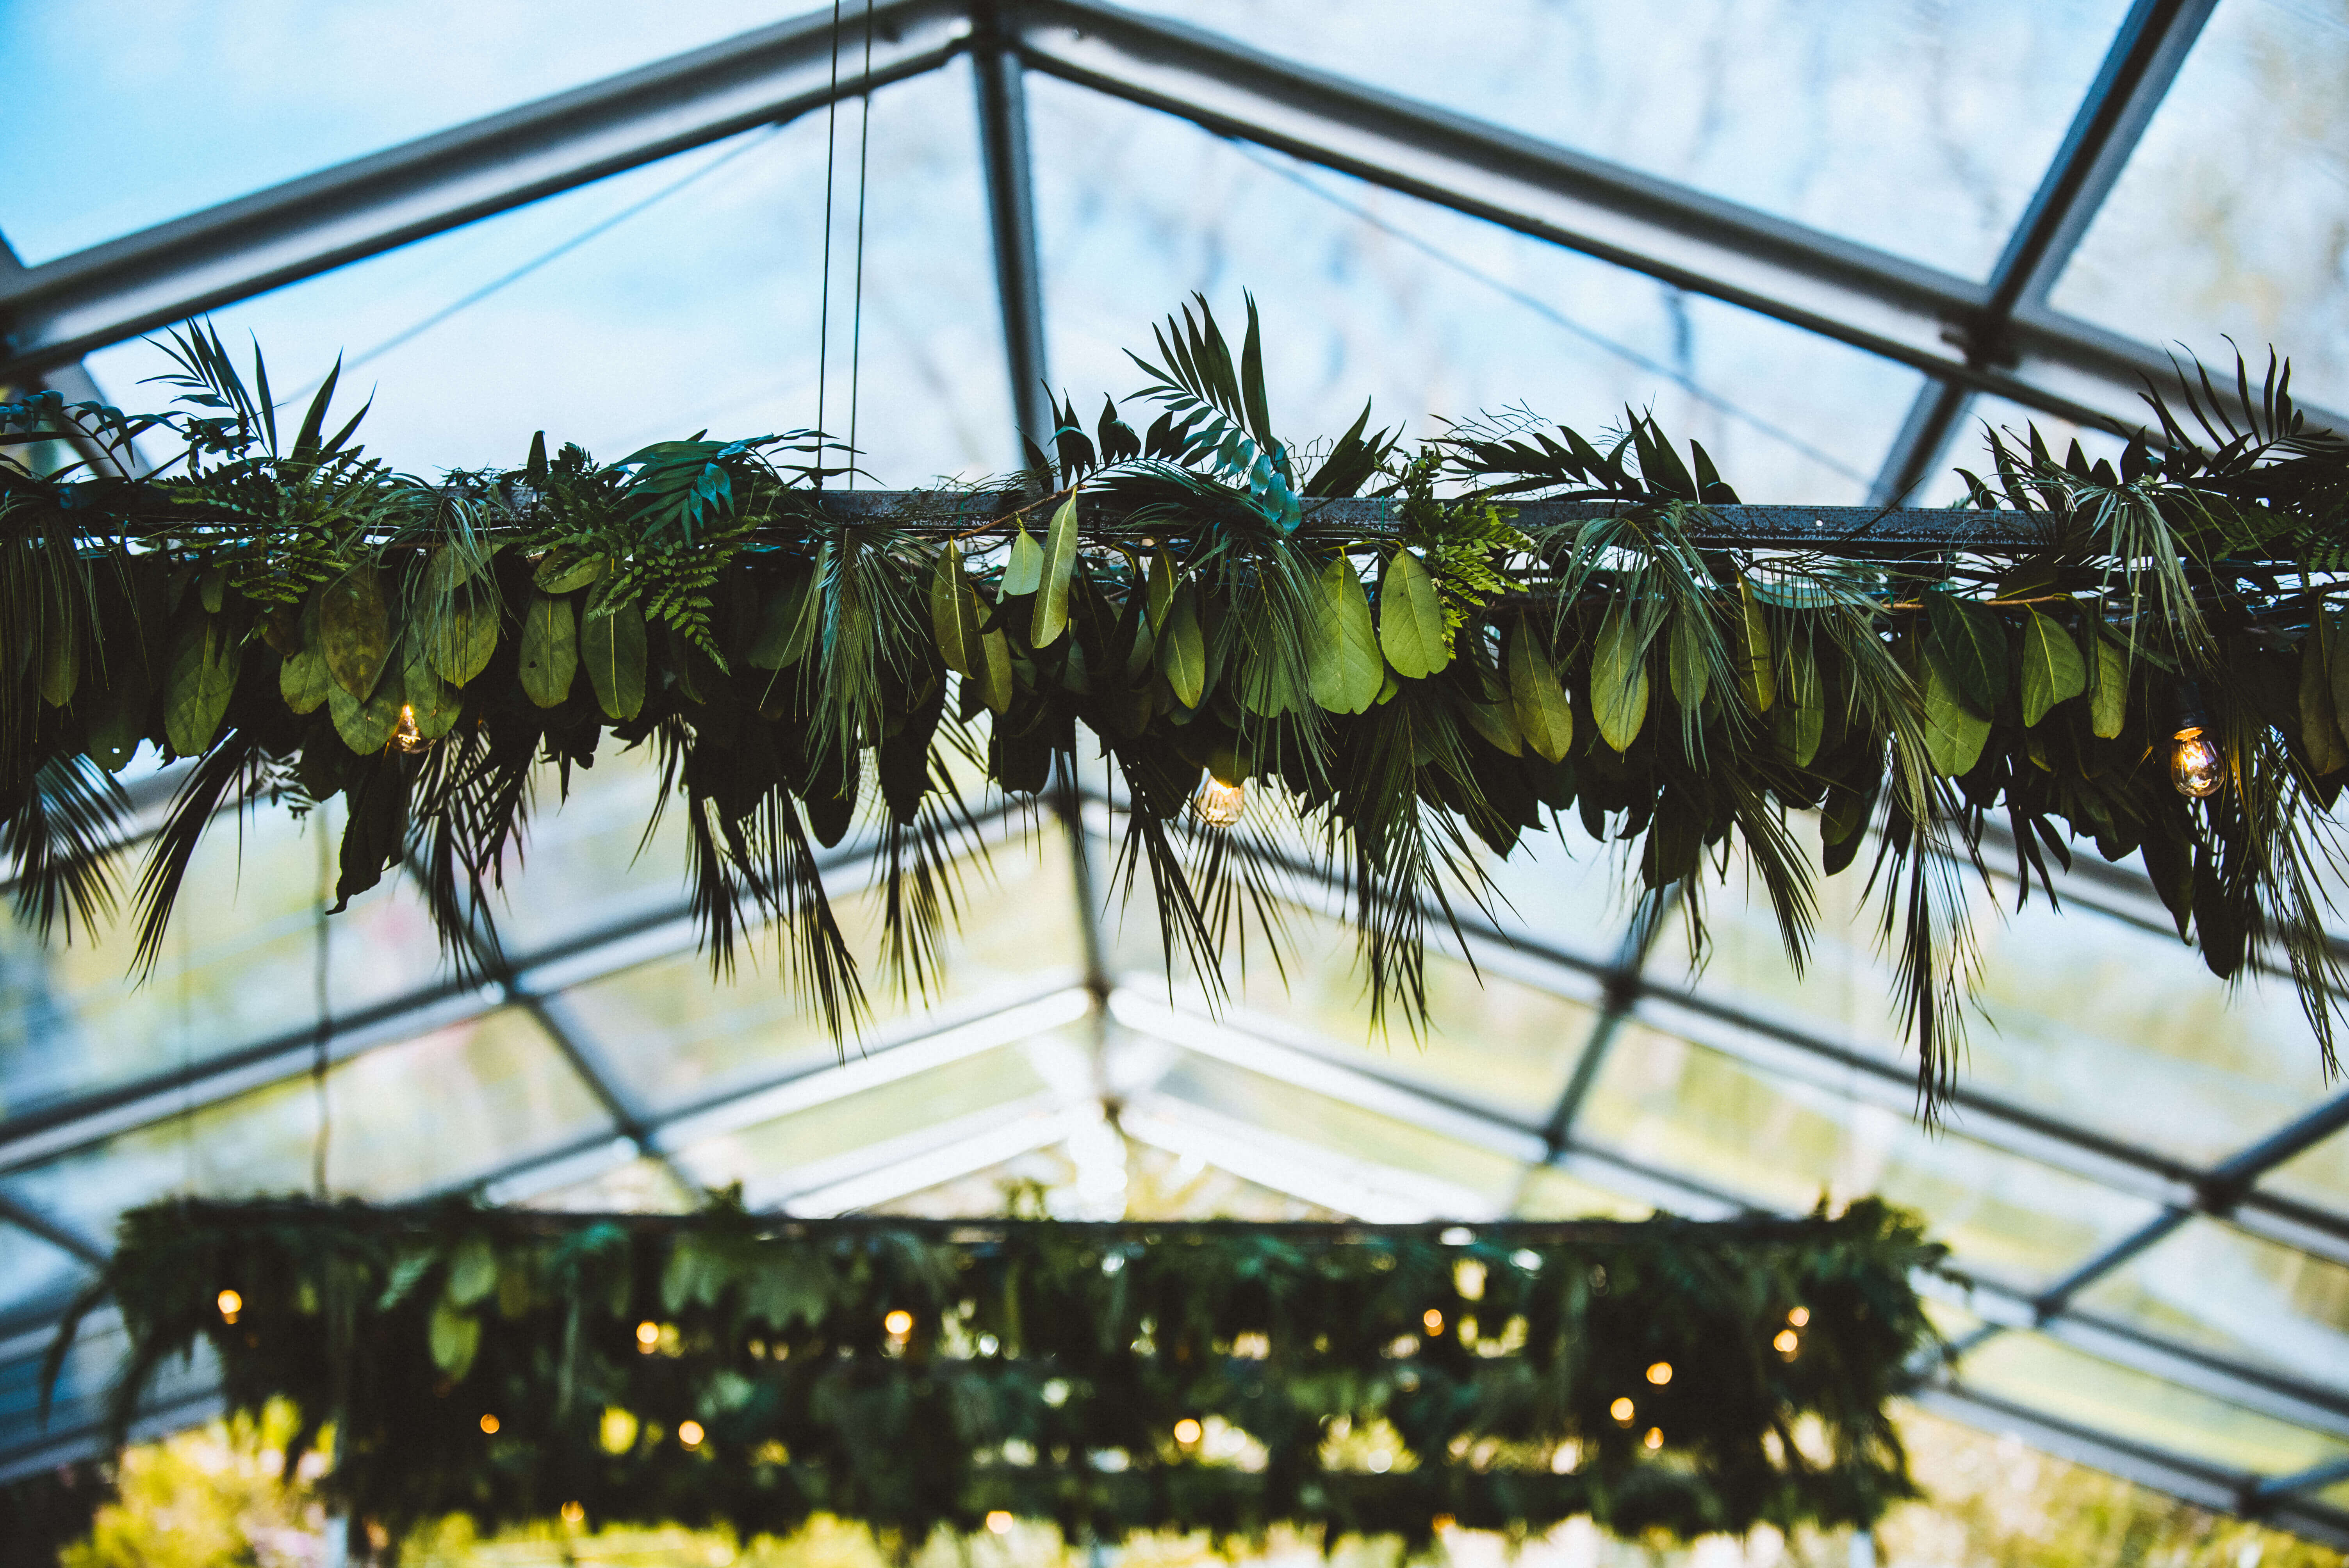 Clear Roofs and Hanging Foliage